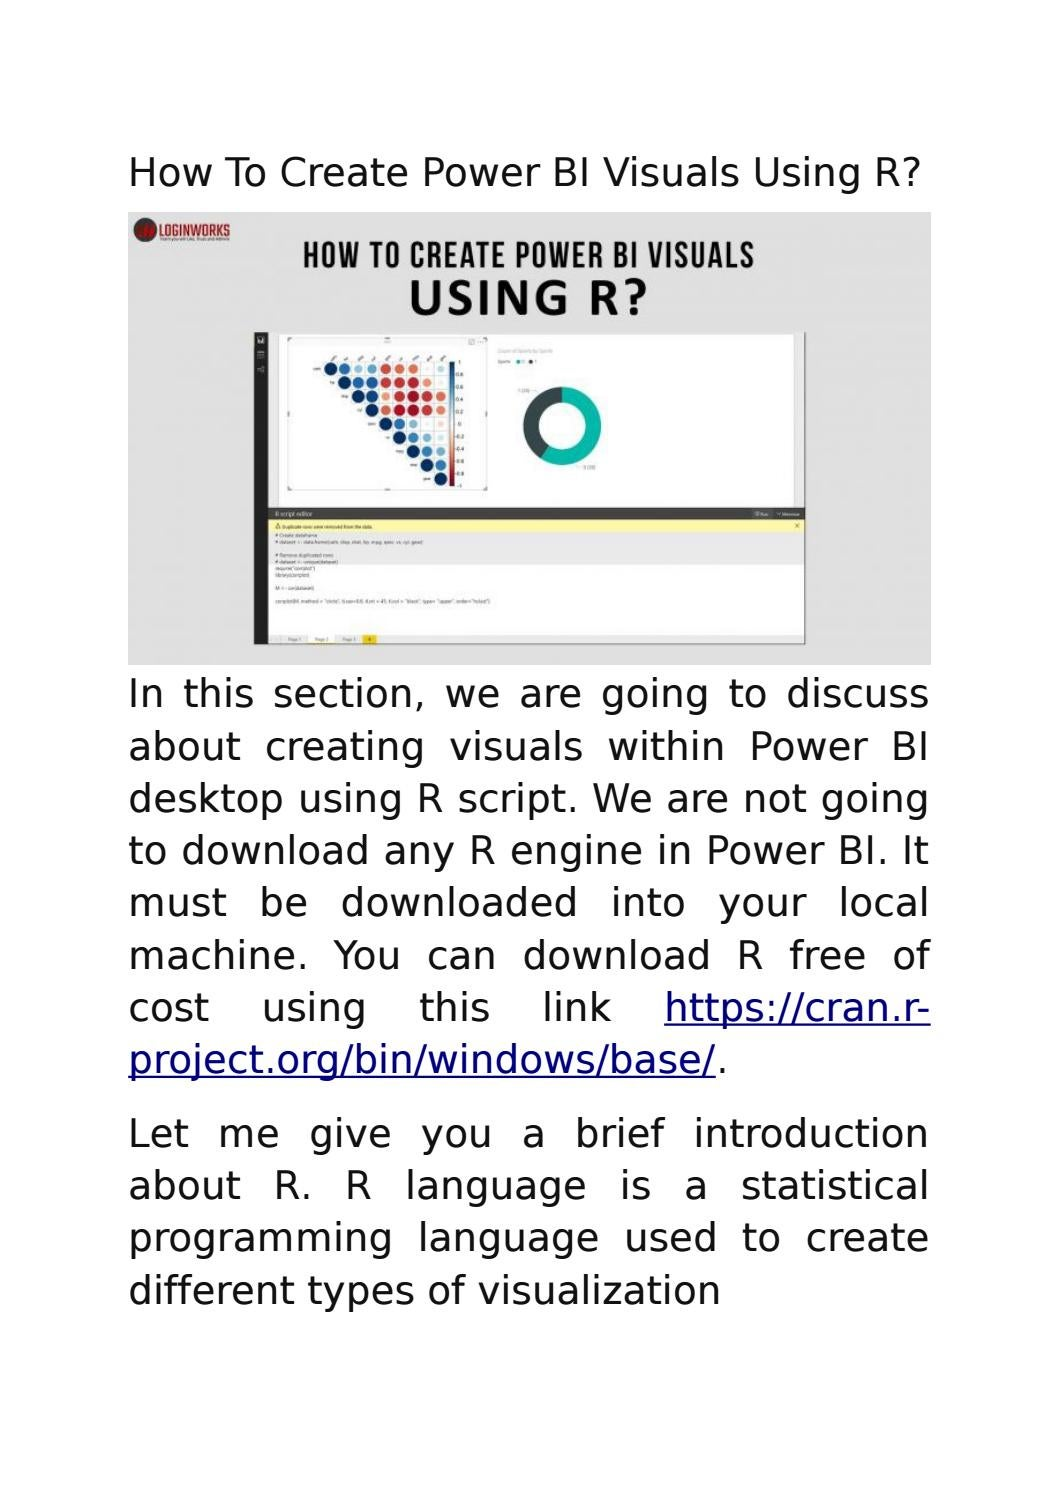 How To Create Power BI Visuals Using R? by loginworks - issuu